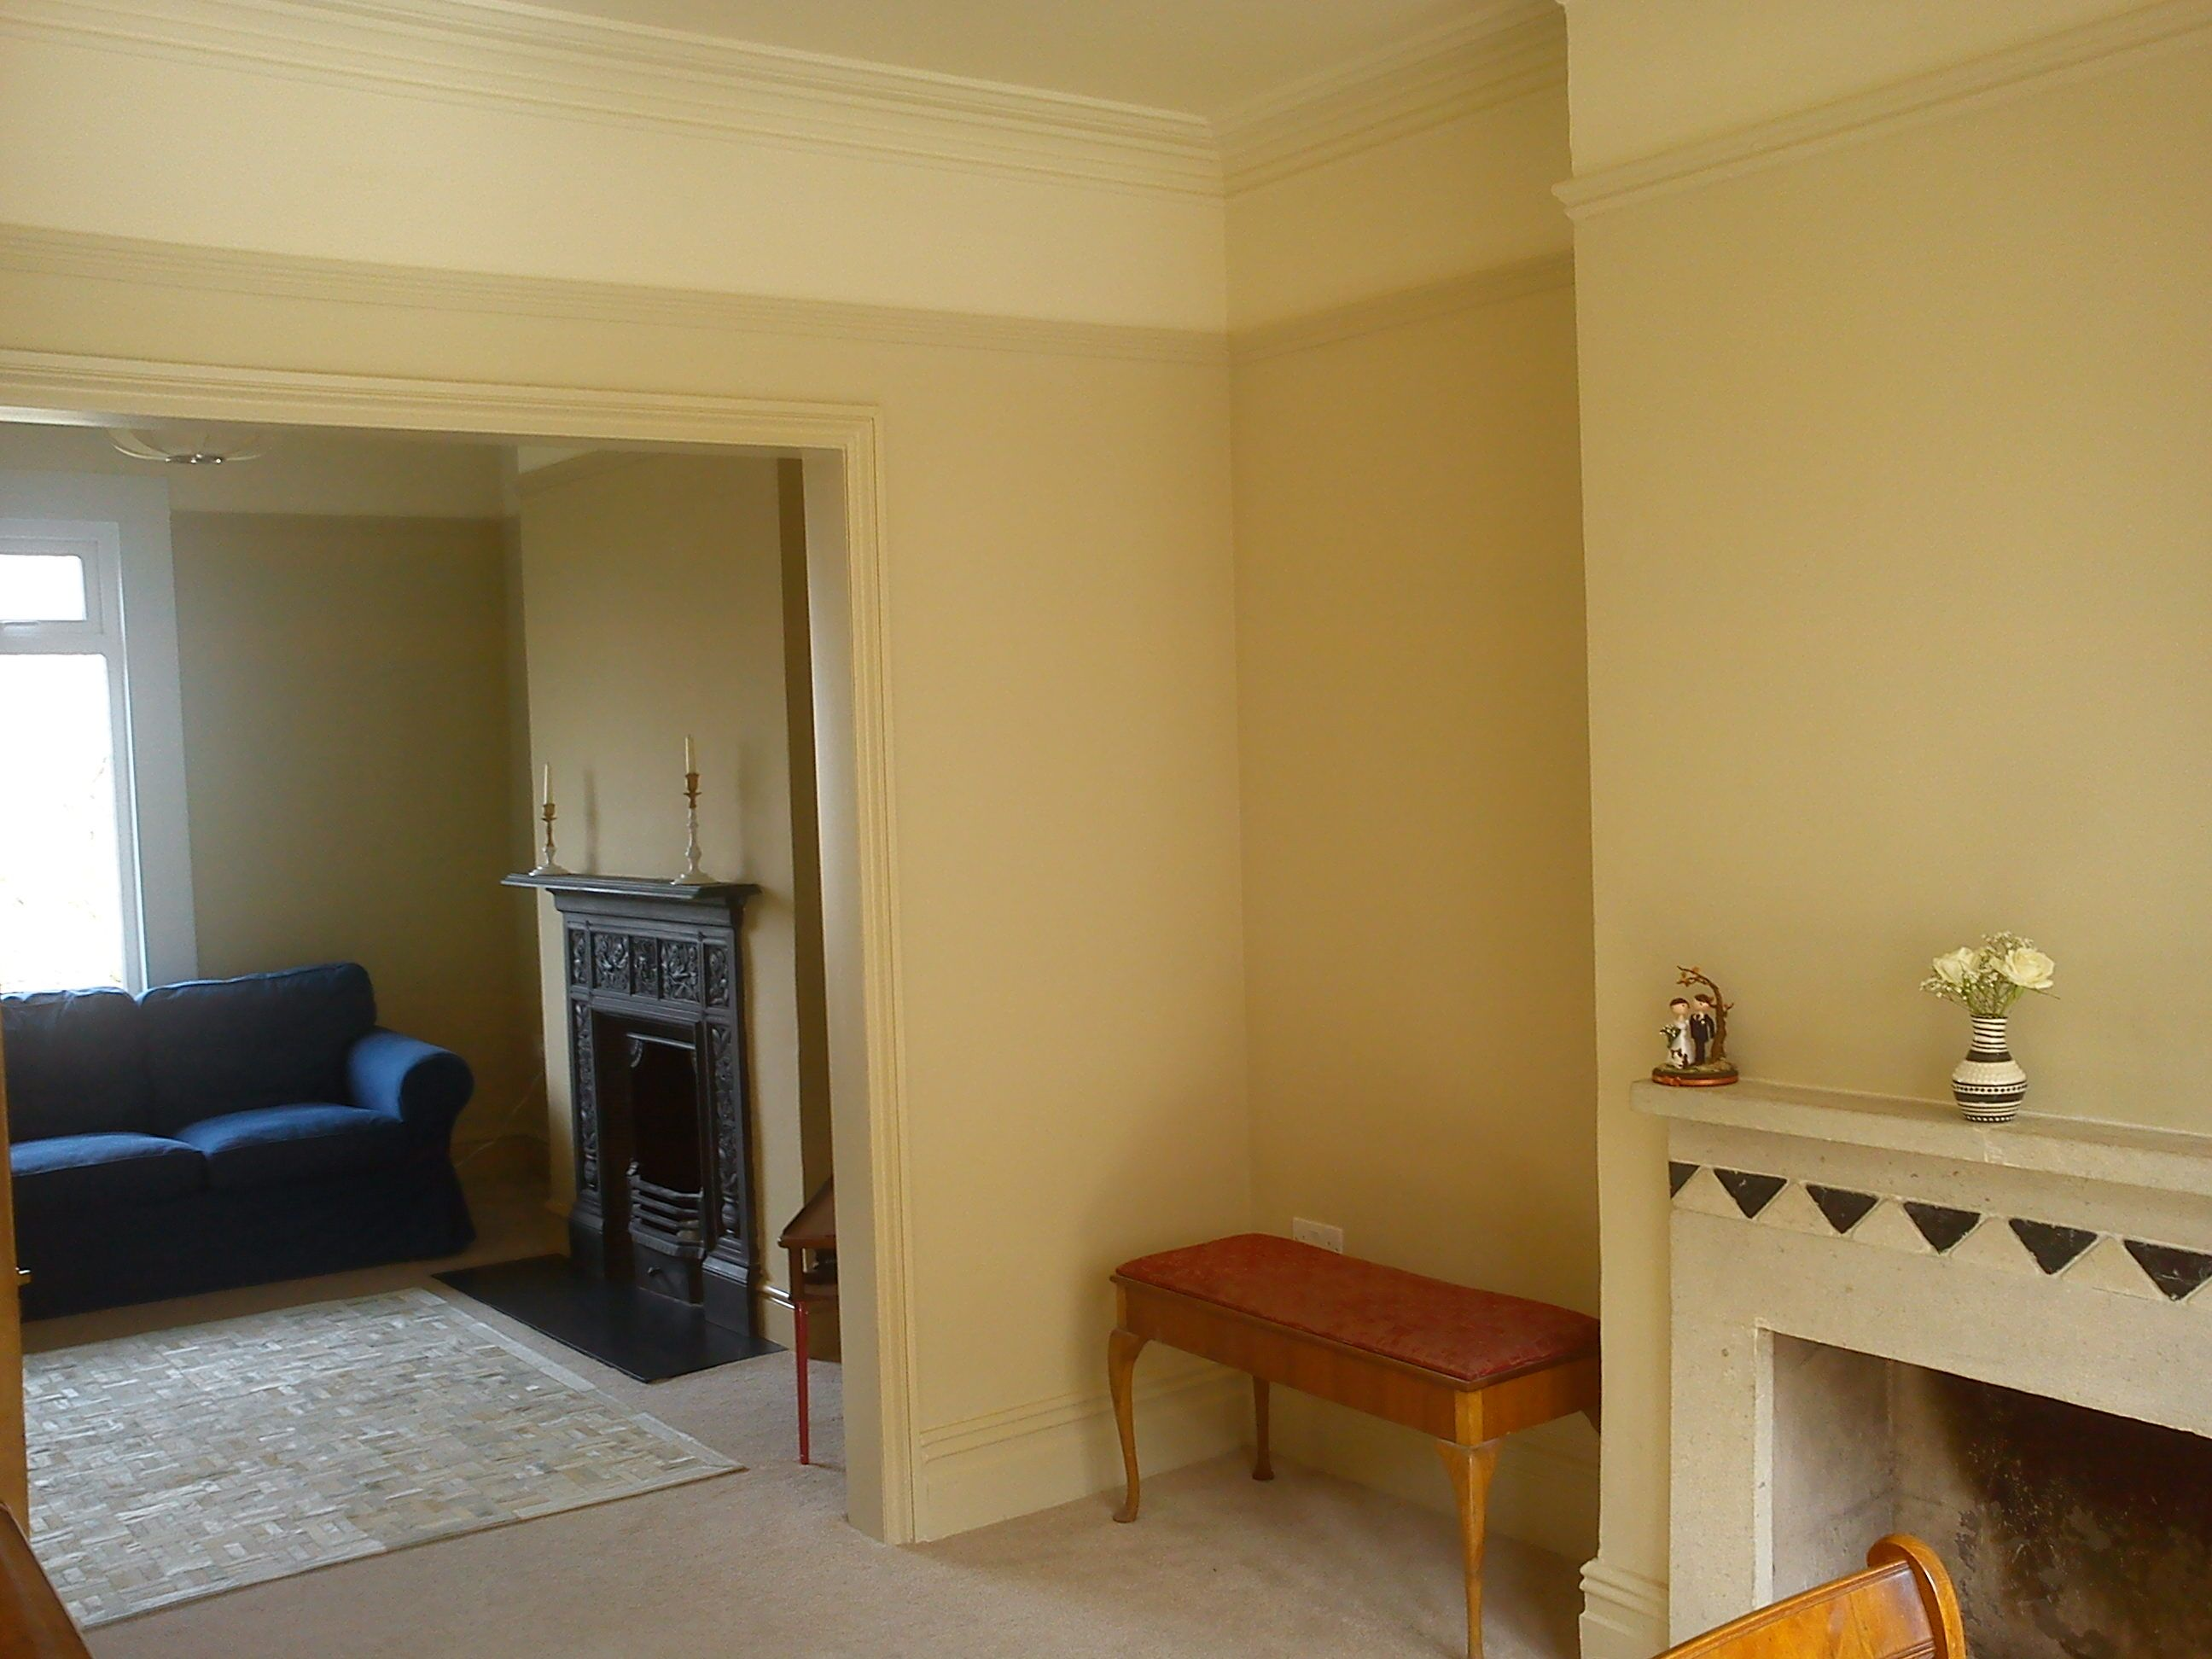 Finished paint job in lounge (back room): Farrow & Ball No. 16 Cord ...